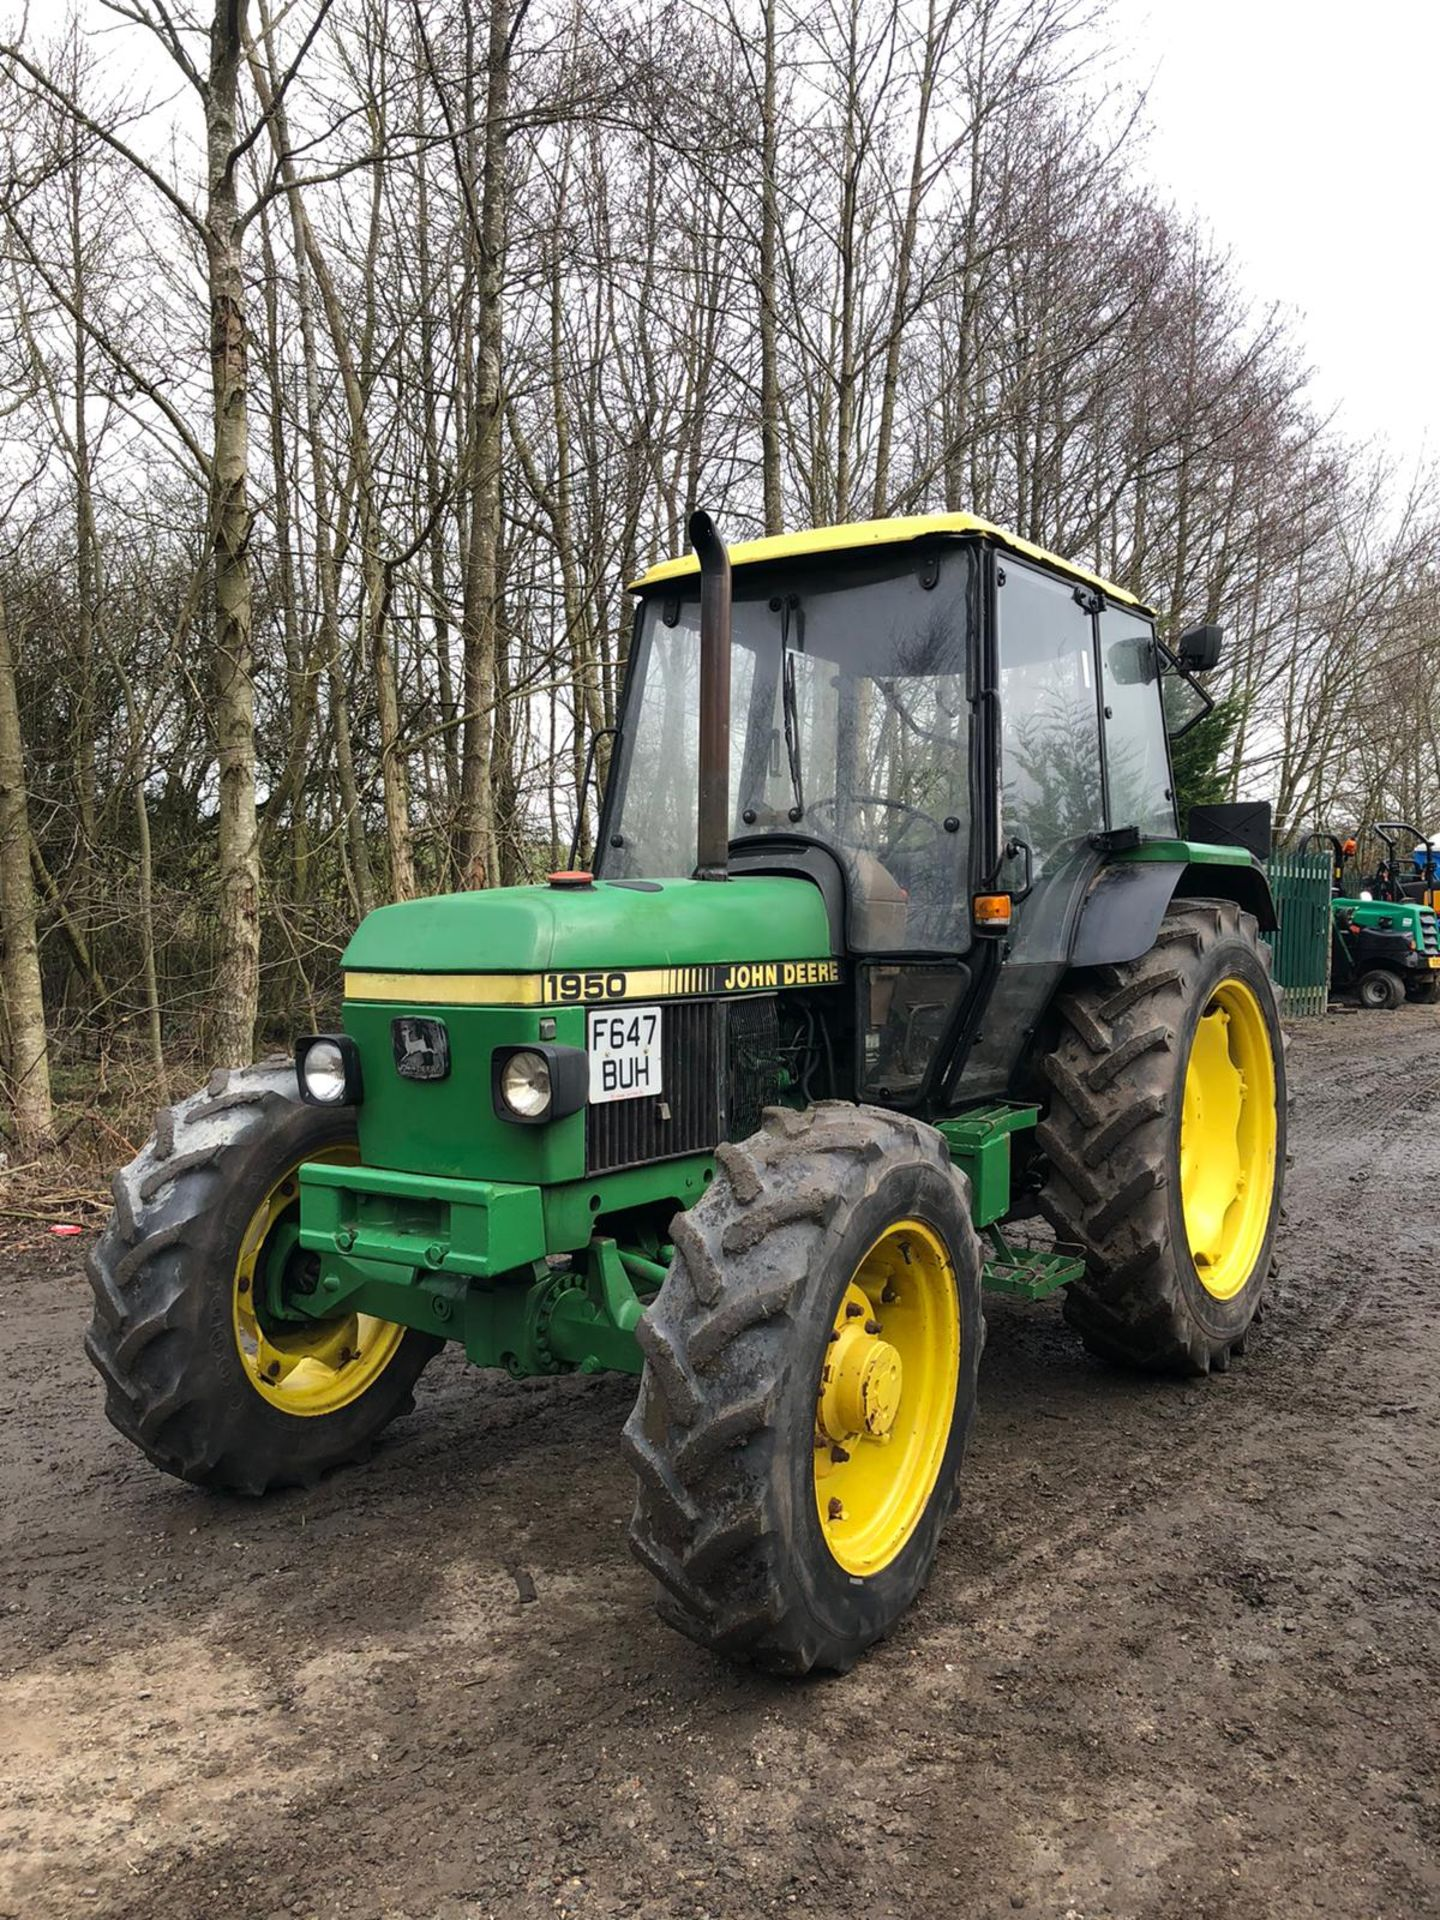 Lot 42 - JOHN DEERE 1950 TRACTOR, 4 WHEEL DRIVE, FULL GLASS CAB, RUNS, WORKS, DOES EVERYTHING IT SHOULD